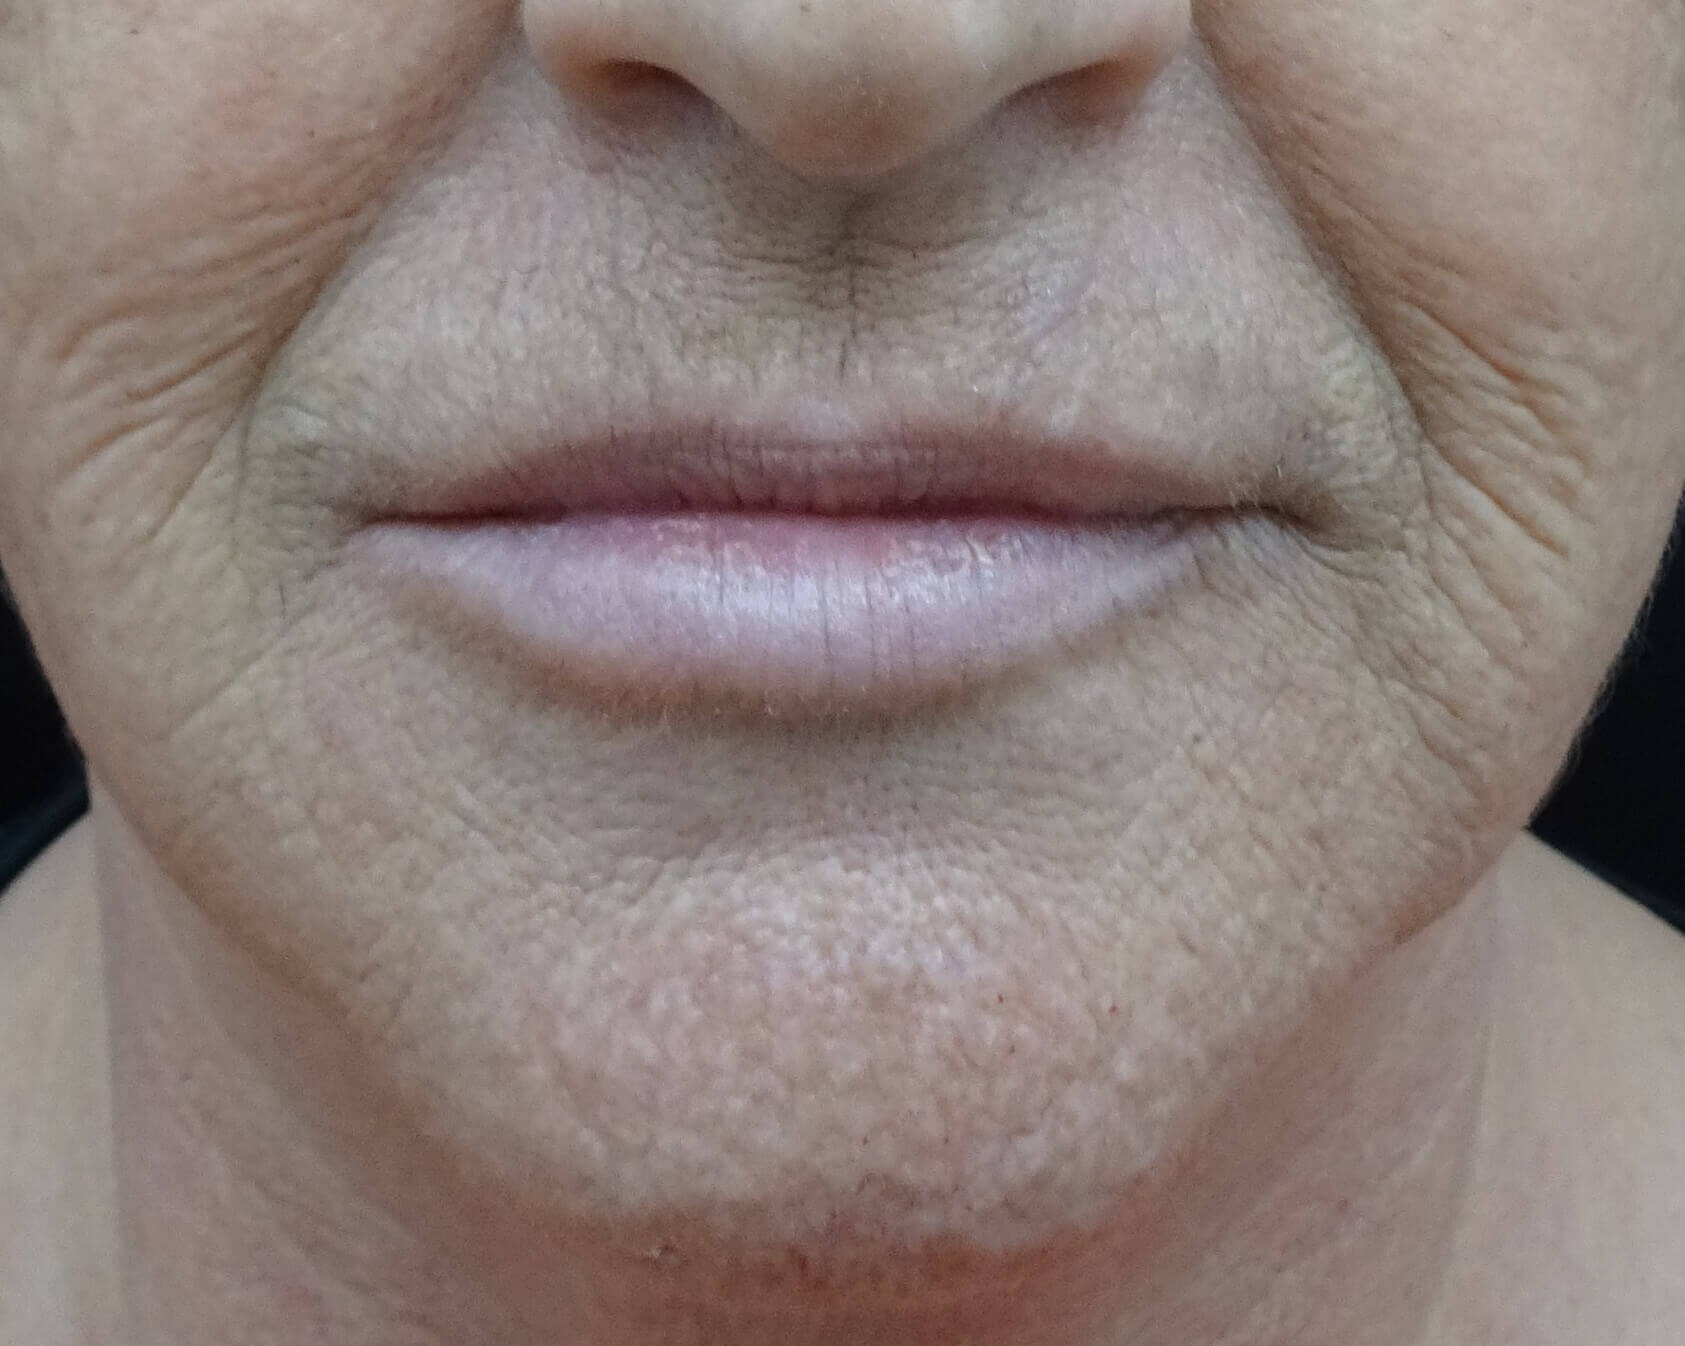 Fuller Lips with Juvederm After Juvederm